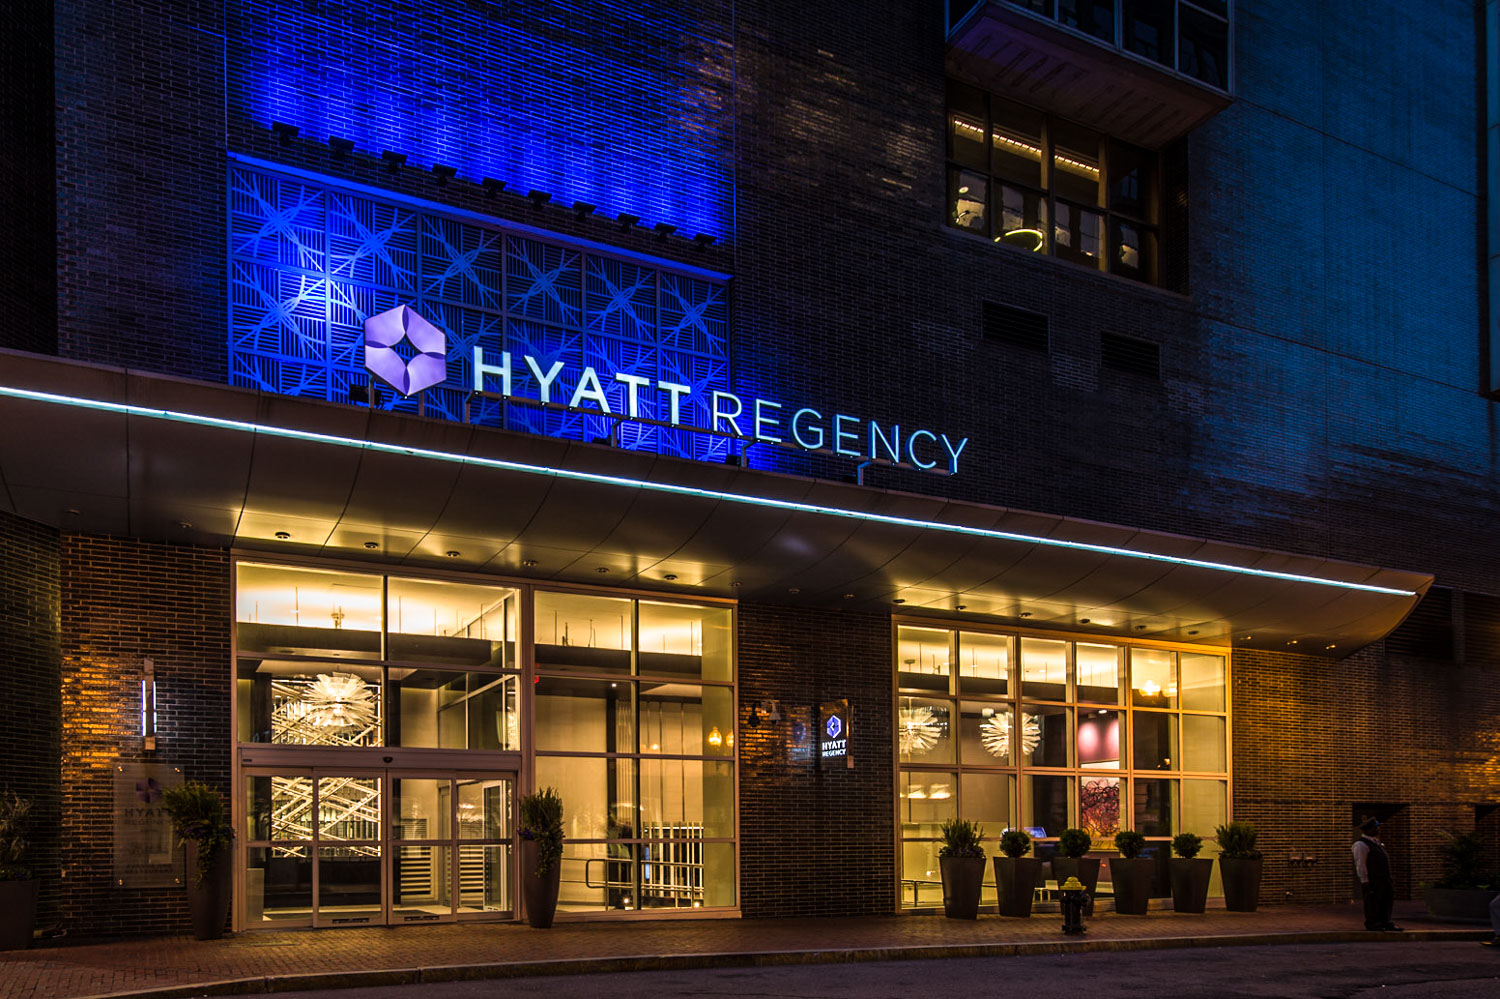 008-082_130531_Hyatt_Regency_Boston.jpg